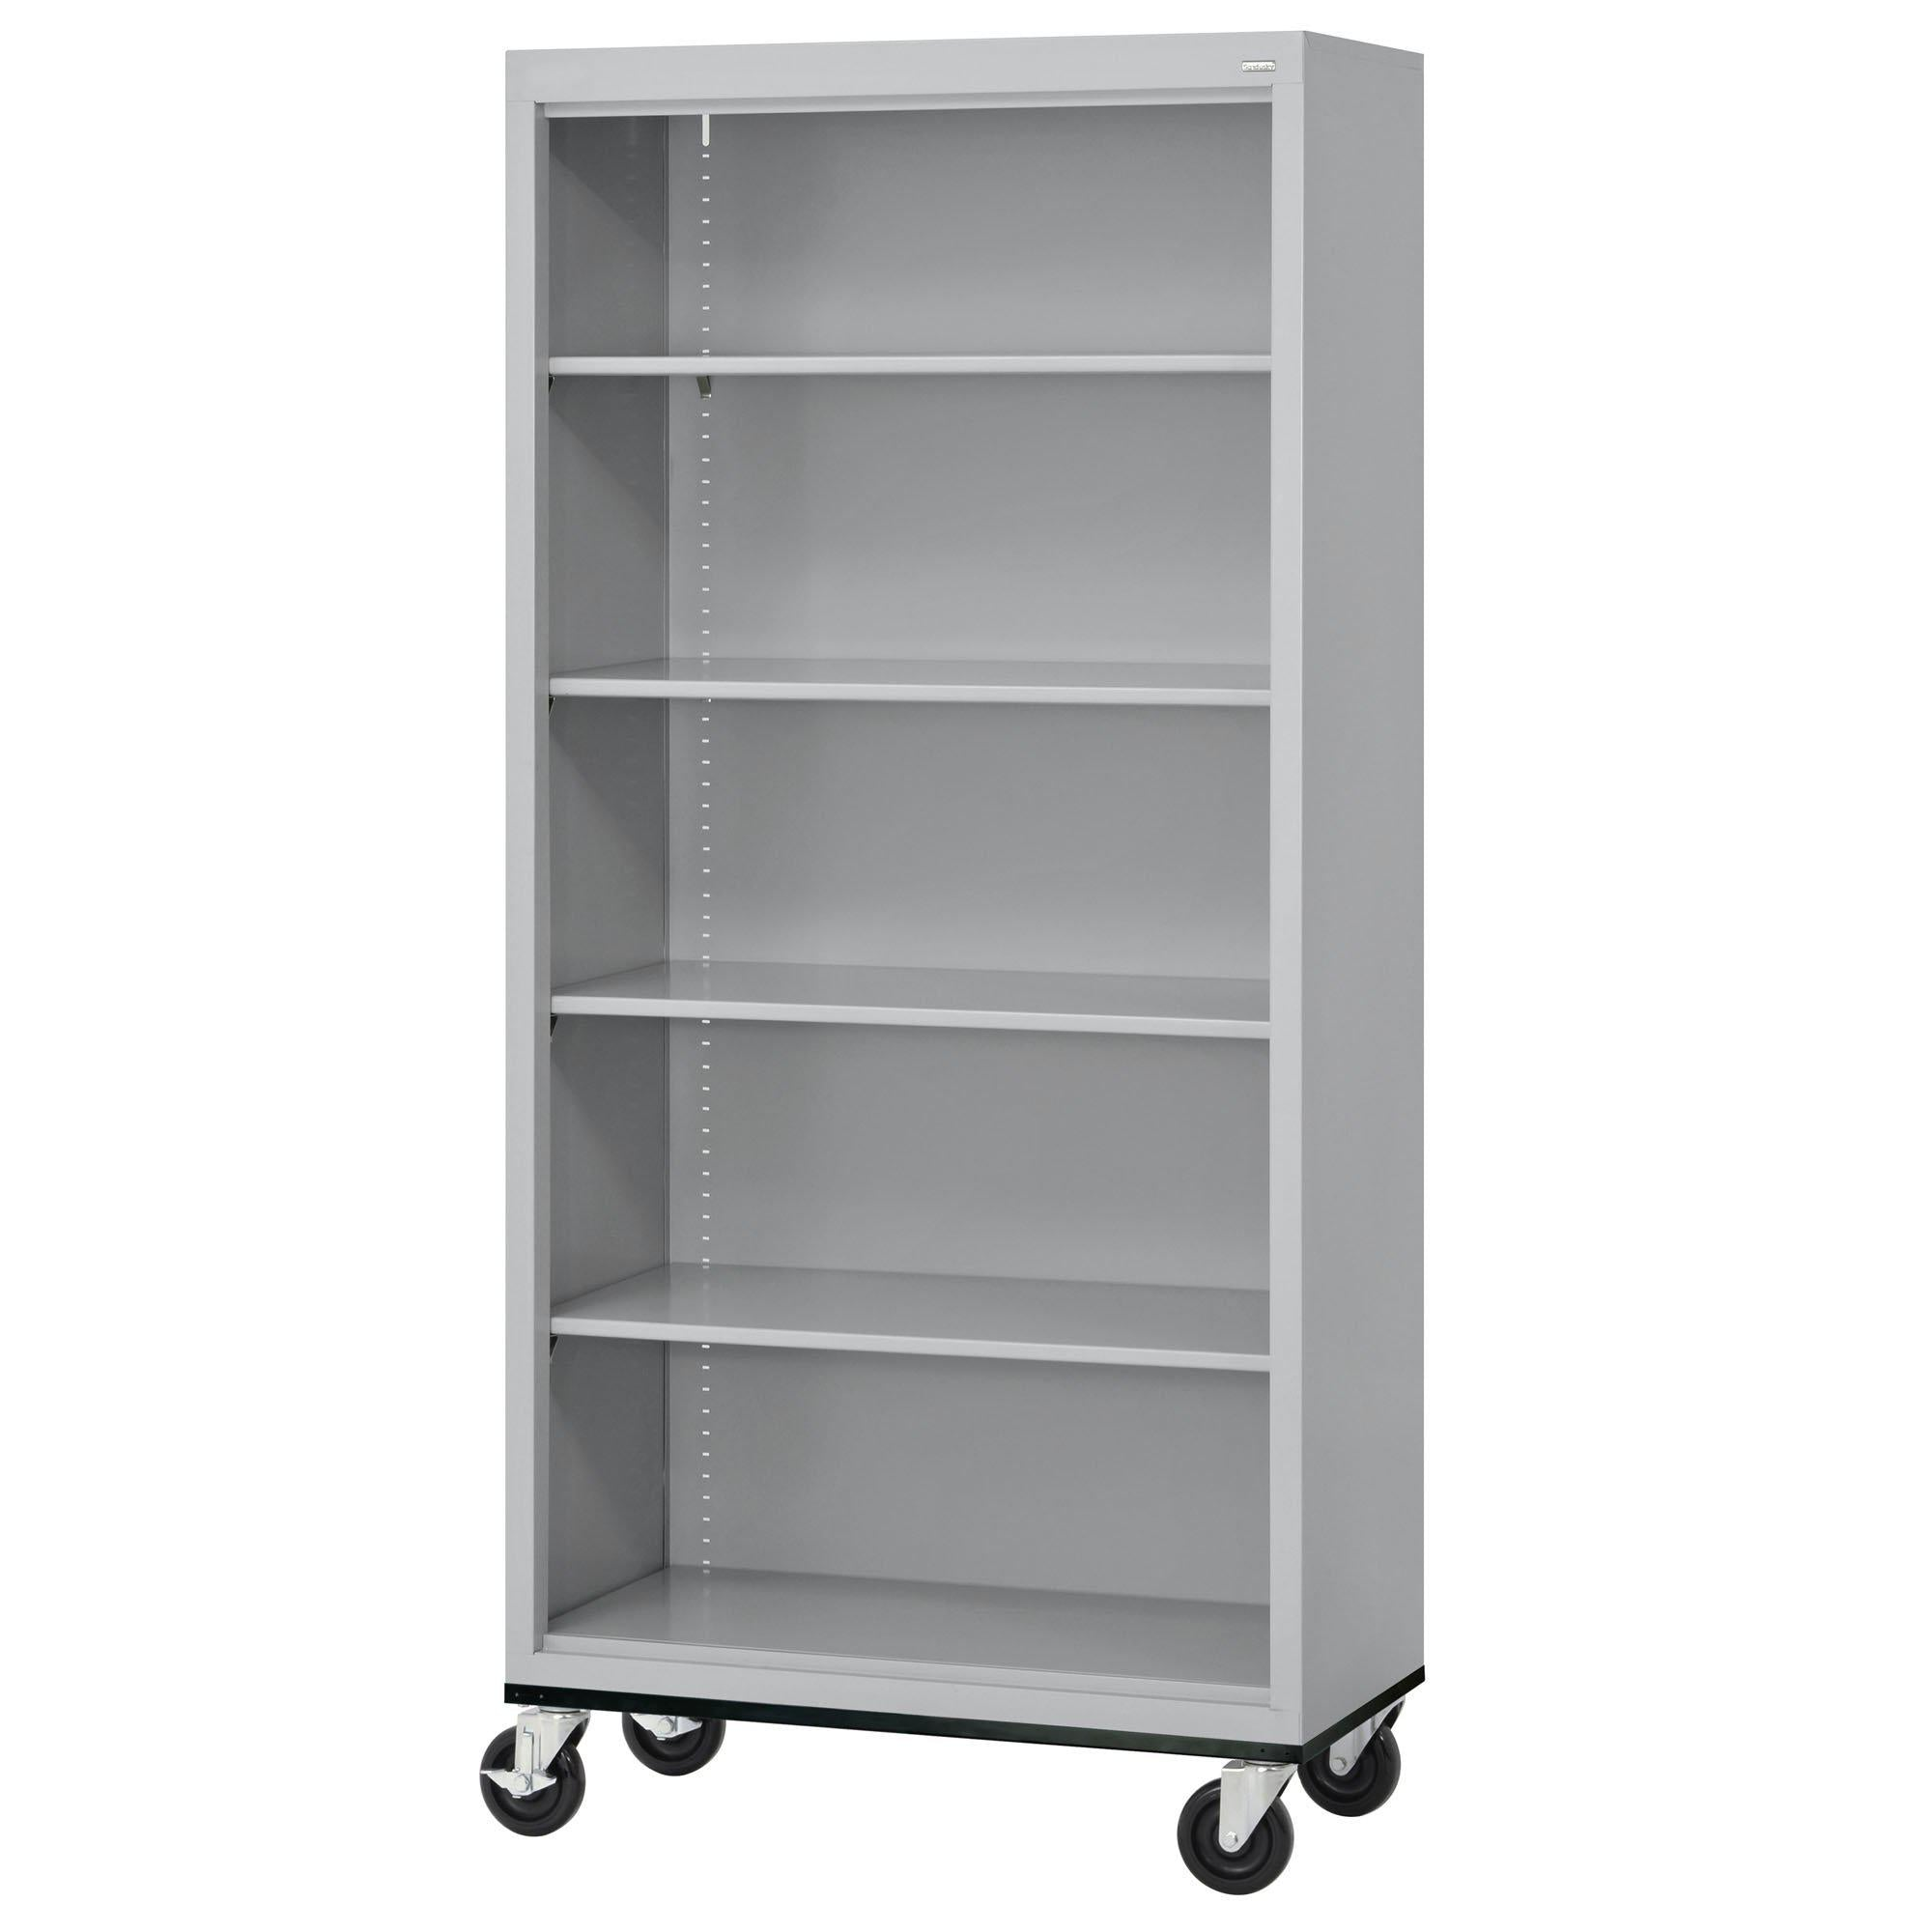 Elite Series Welded Steel Mobile Bookcase, 4 Shelves and Bottom Shelf, 36 x 18 x 72, Dove Gray